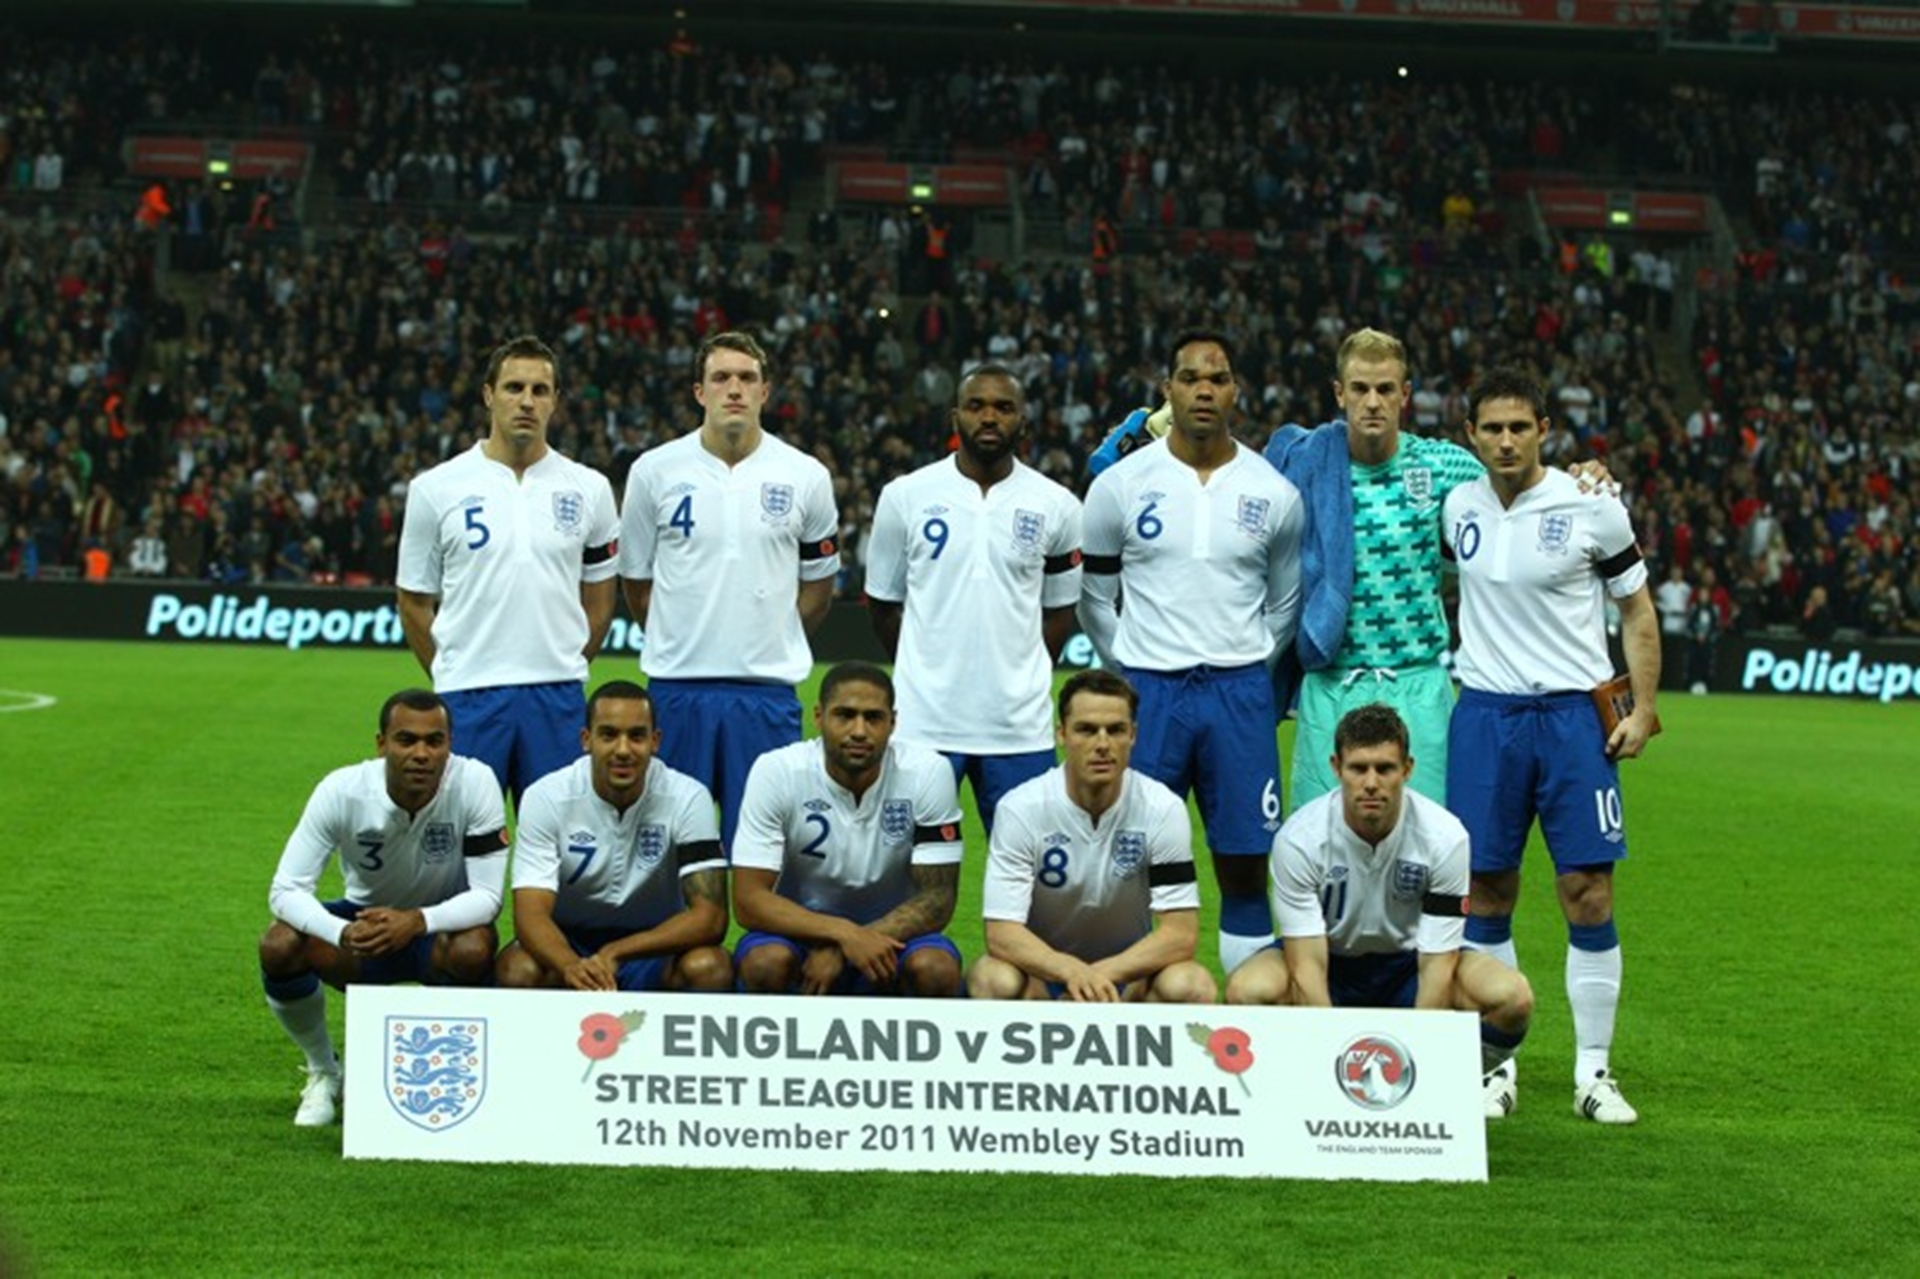 Lucky Vauxhall Trade Club members saw England beat Spain